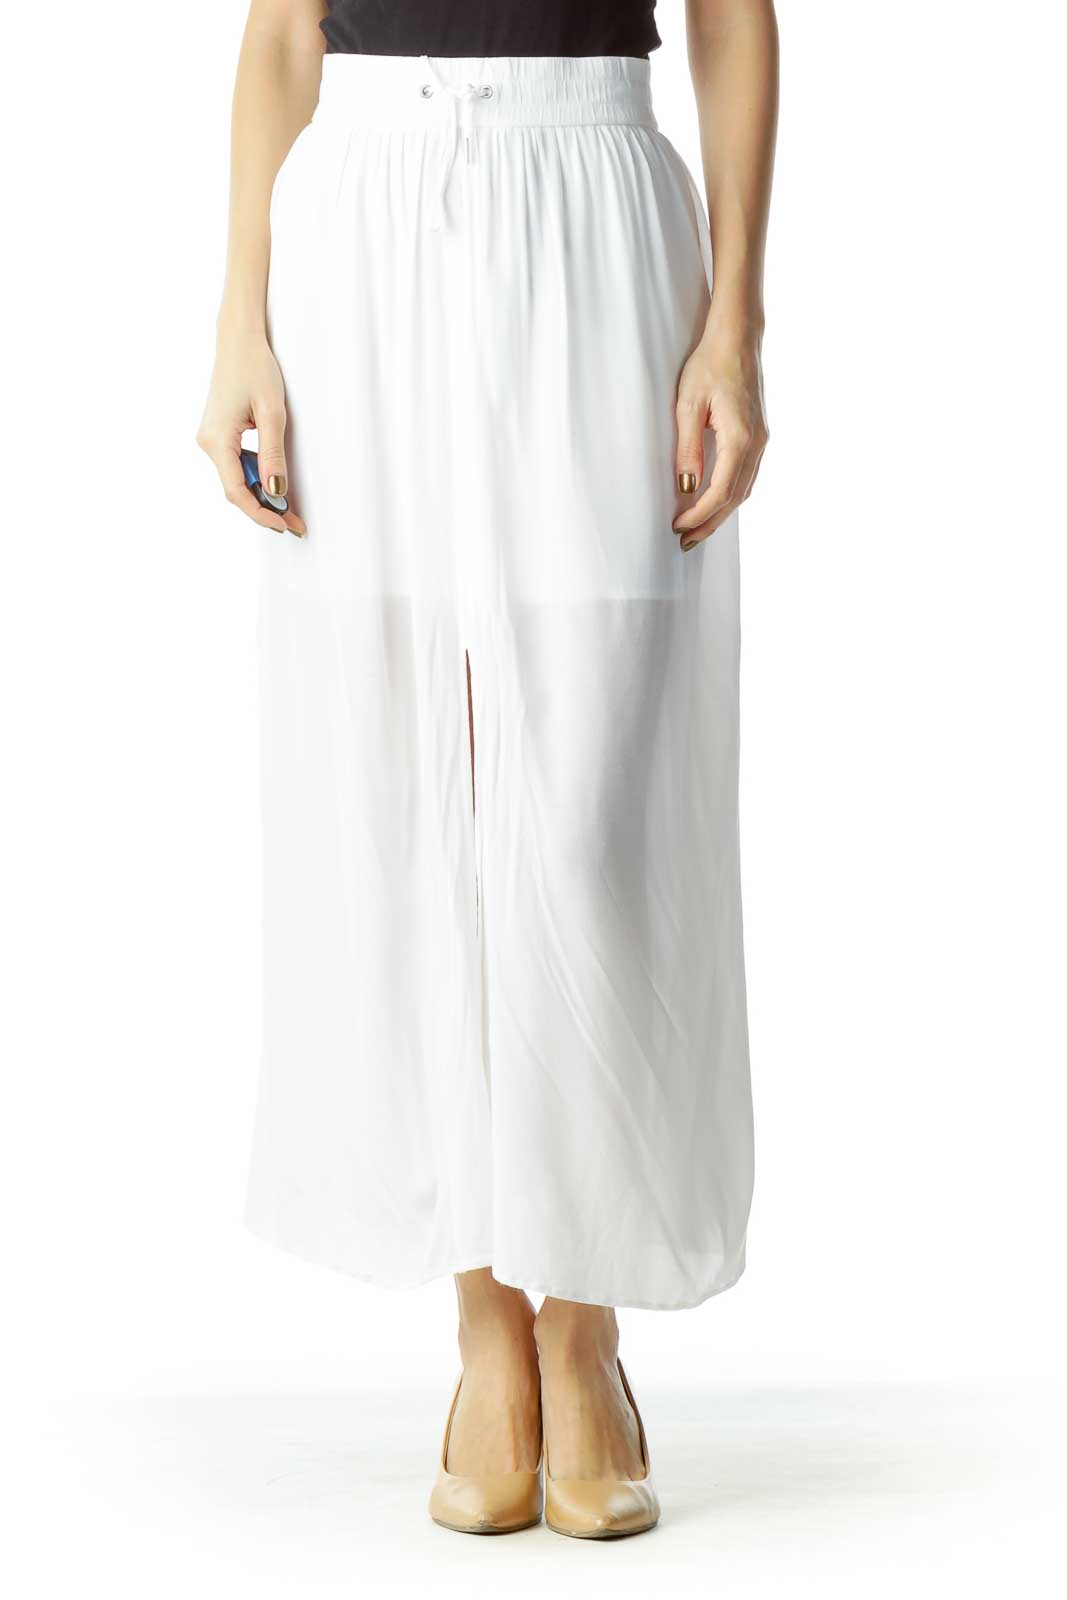 White Sheer Midi Skirt